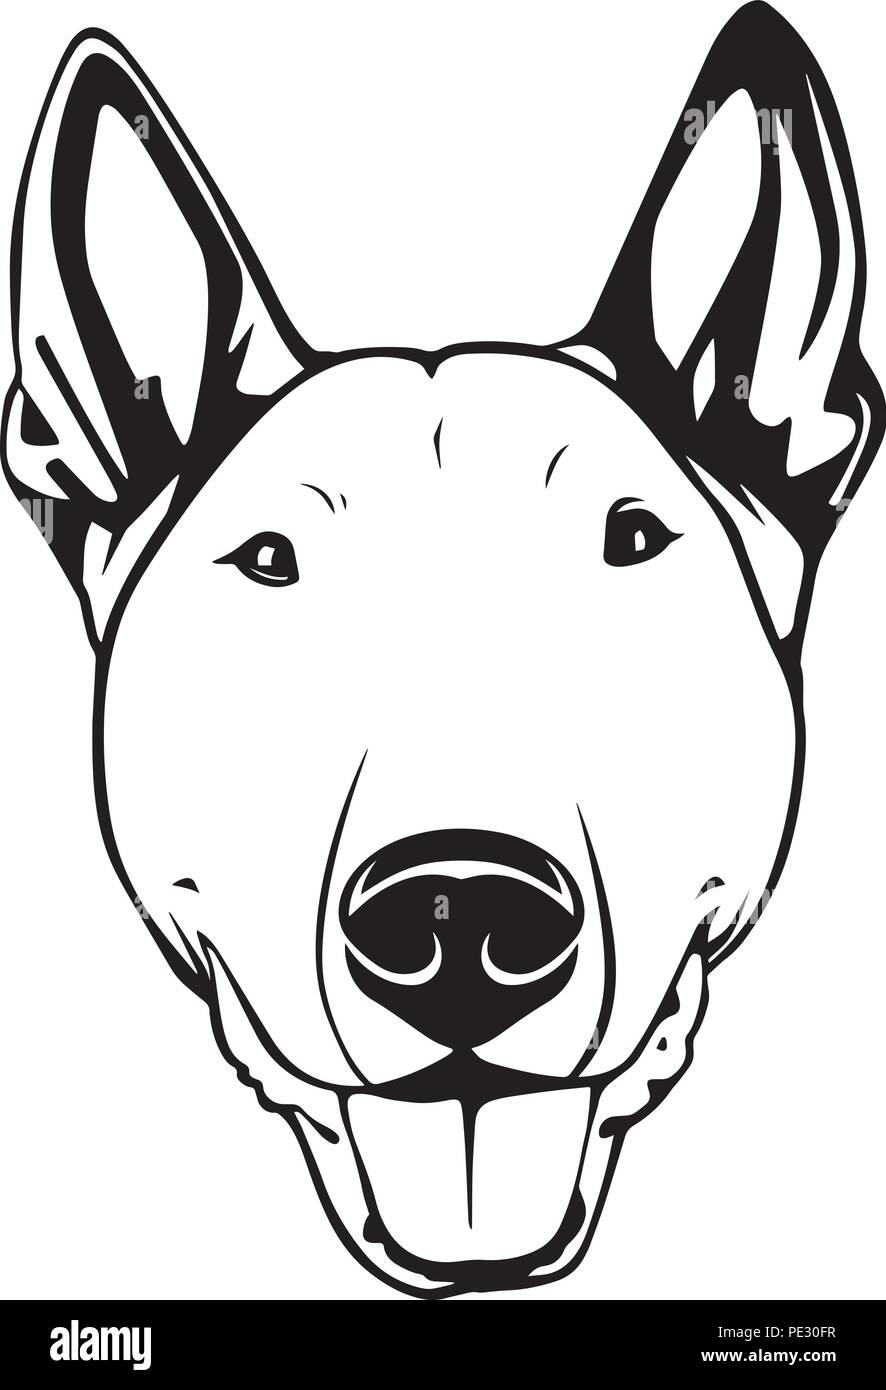 Bull Terrier Dog Breed Pet Puppy Isolated Head Face Stock Vector